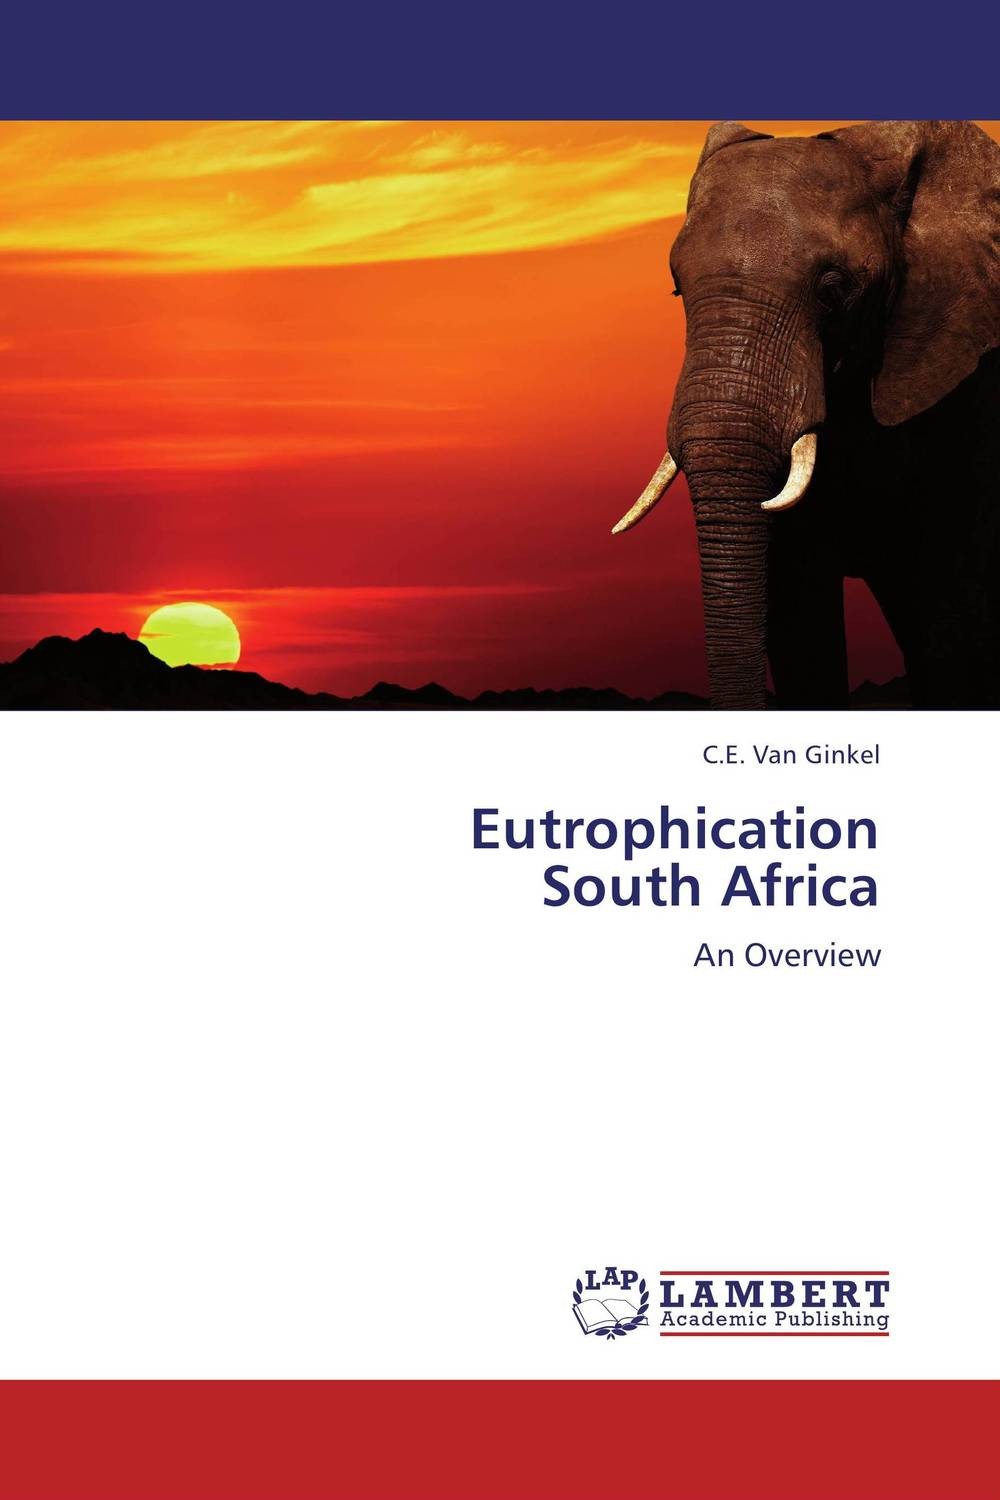 Eutrophication South Africa arcade ndoricimpa inflation output growth and their uncertainties in south africa empirical evidence from an asymmetric multivariate garch m model